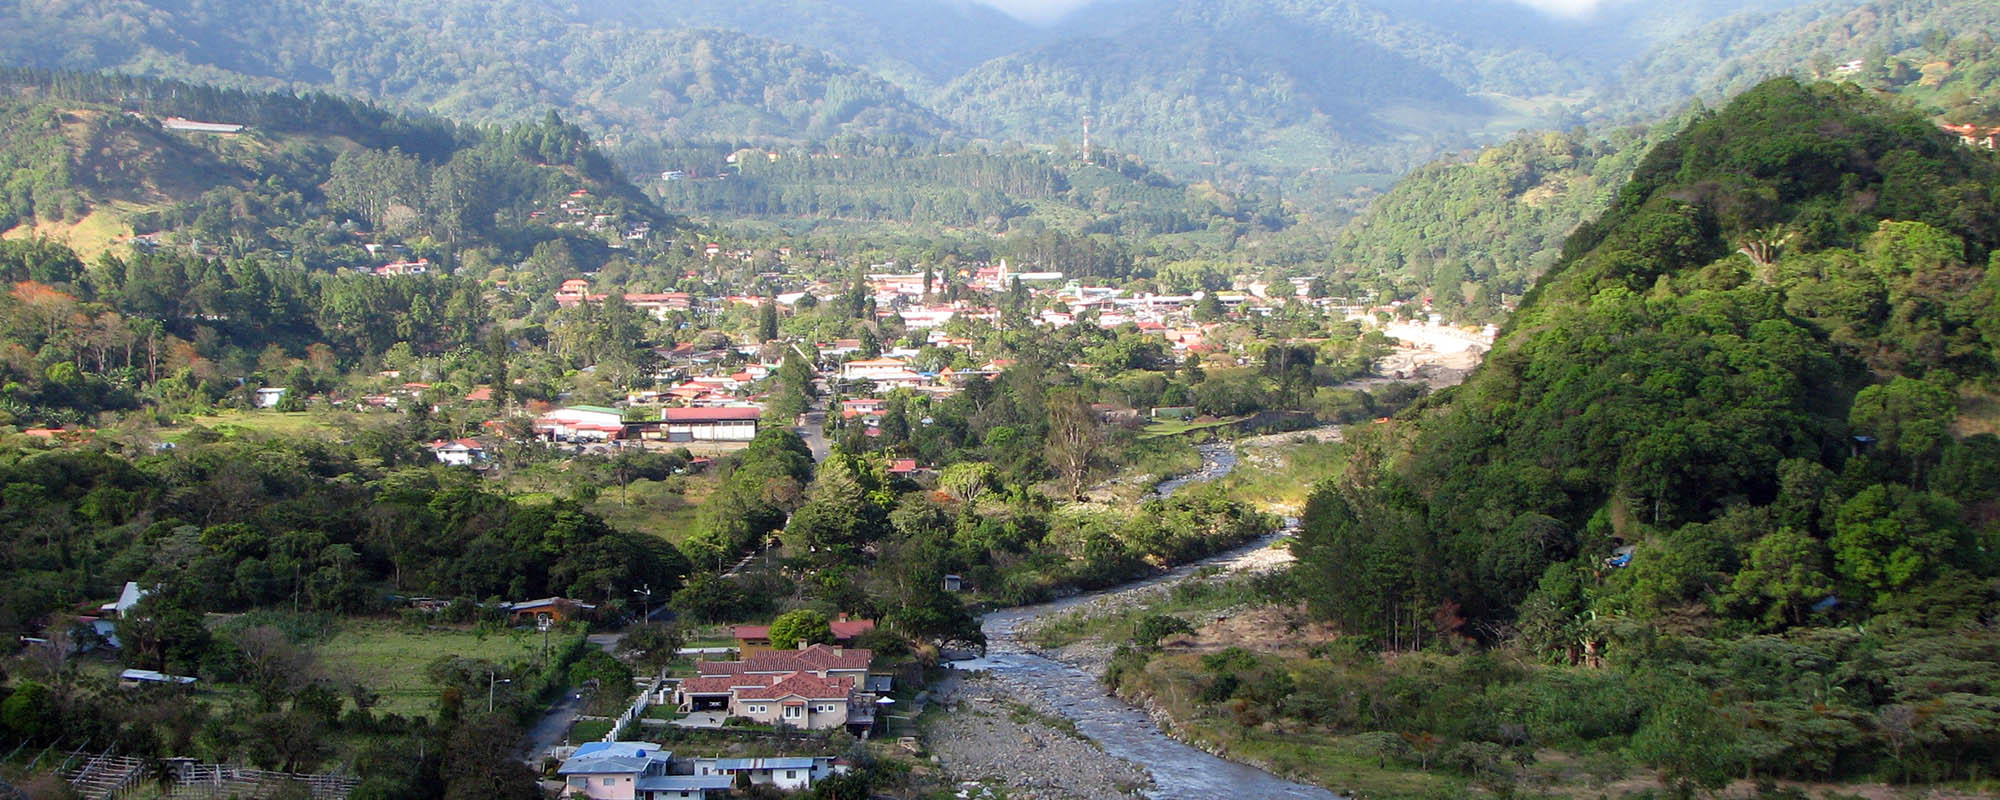 Boquete Tours Amp Packages Vacations Holidays Roundtrips